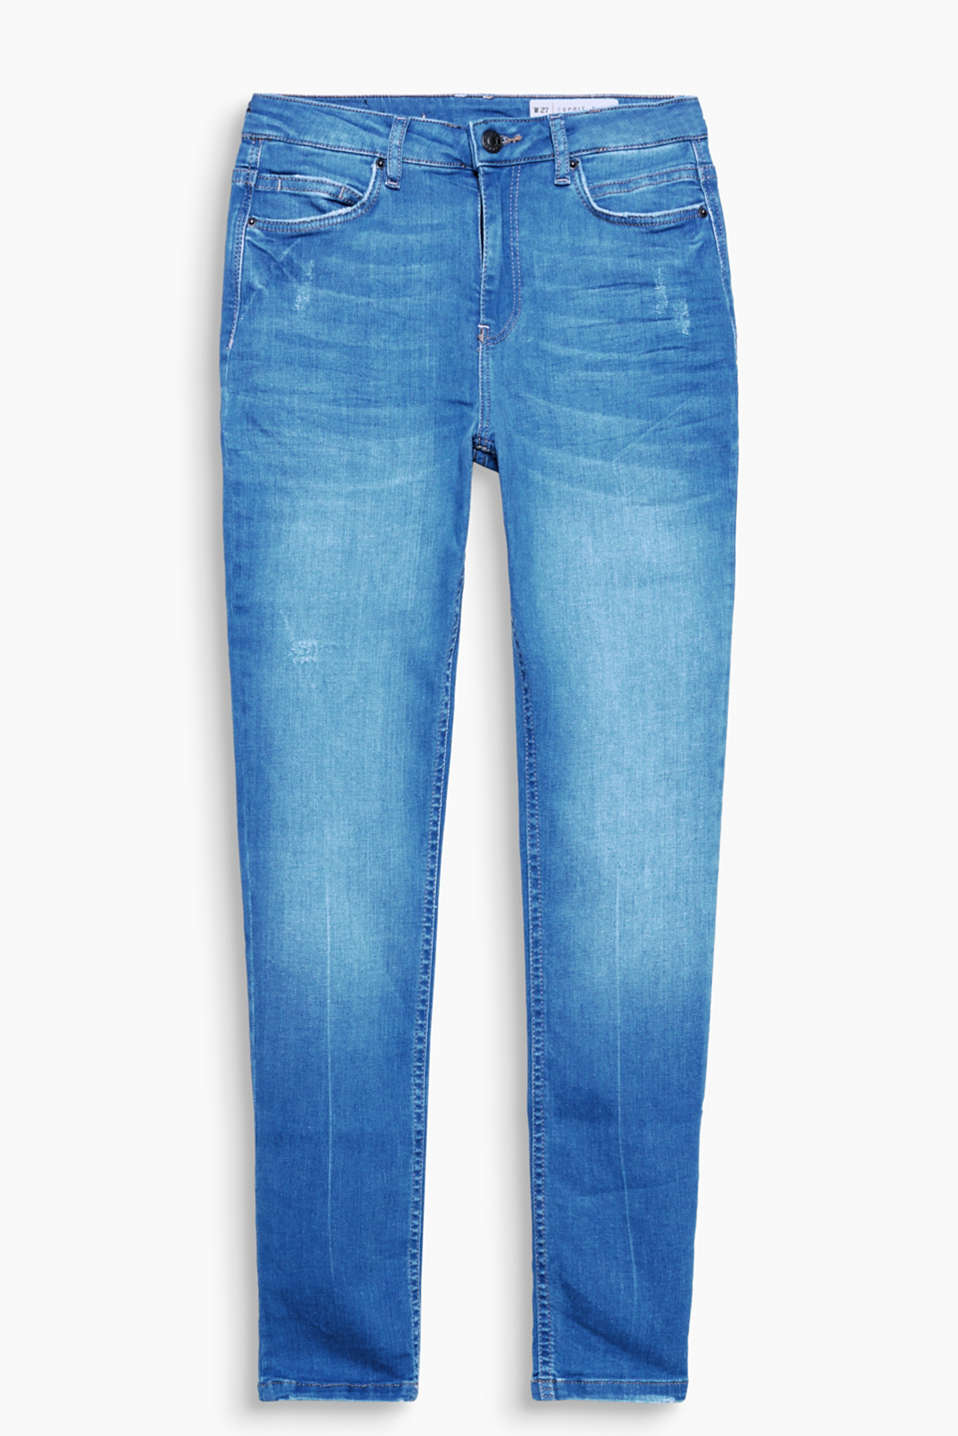 Vintage look stretch jeans with a fashionable high waistband